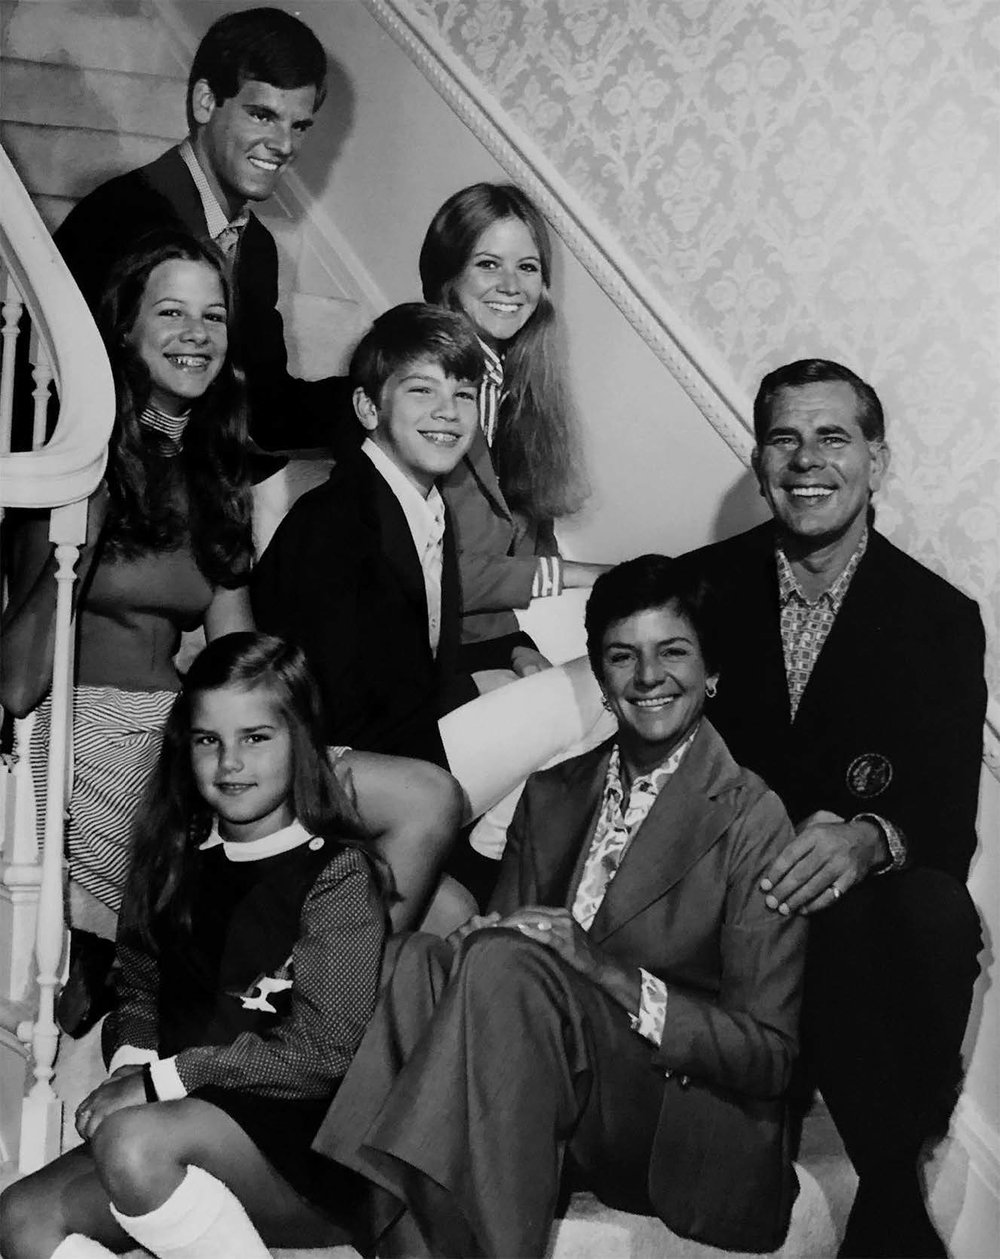 The family in their Winnetka home (clockwise from the top of the stairs): Rocky, Gail, Peter, Bill, Joan, Alison, and Karey